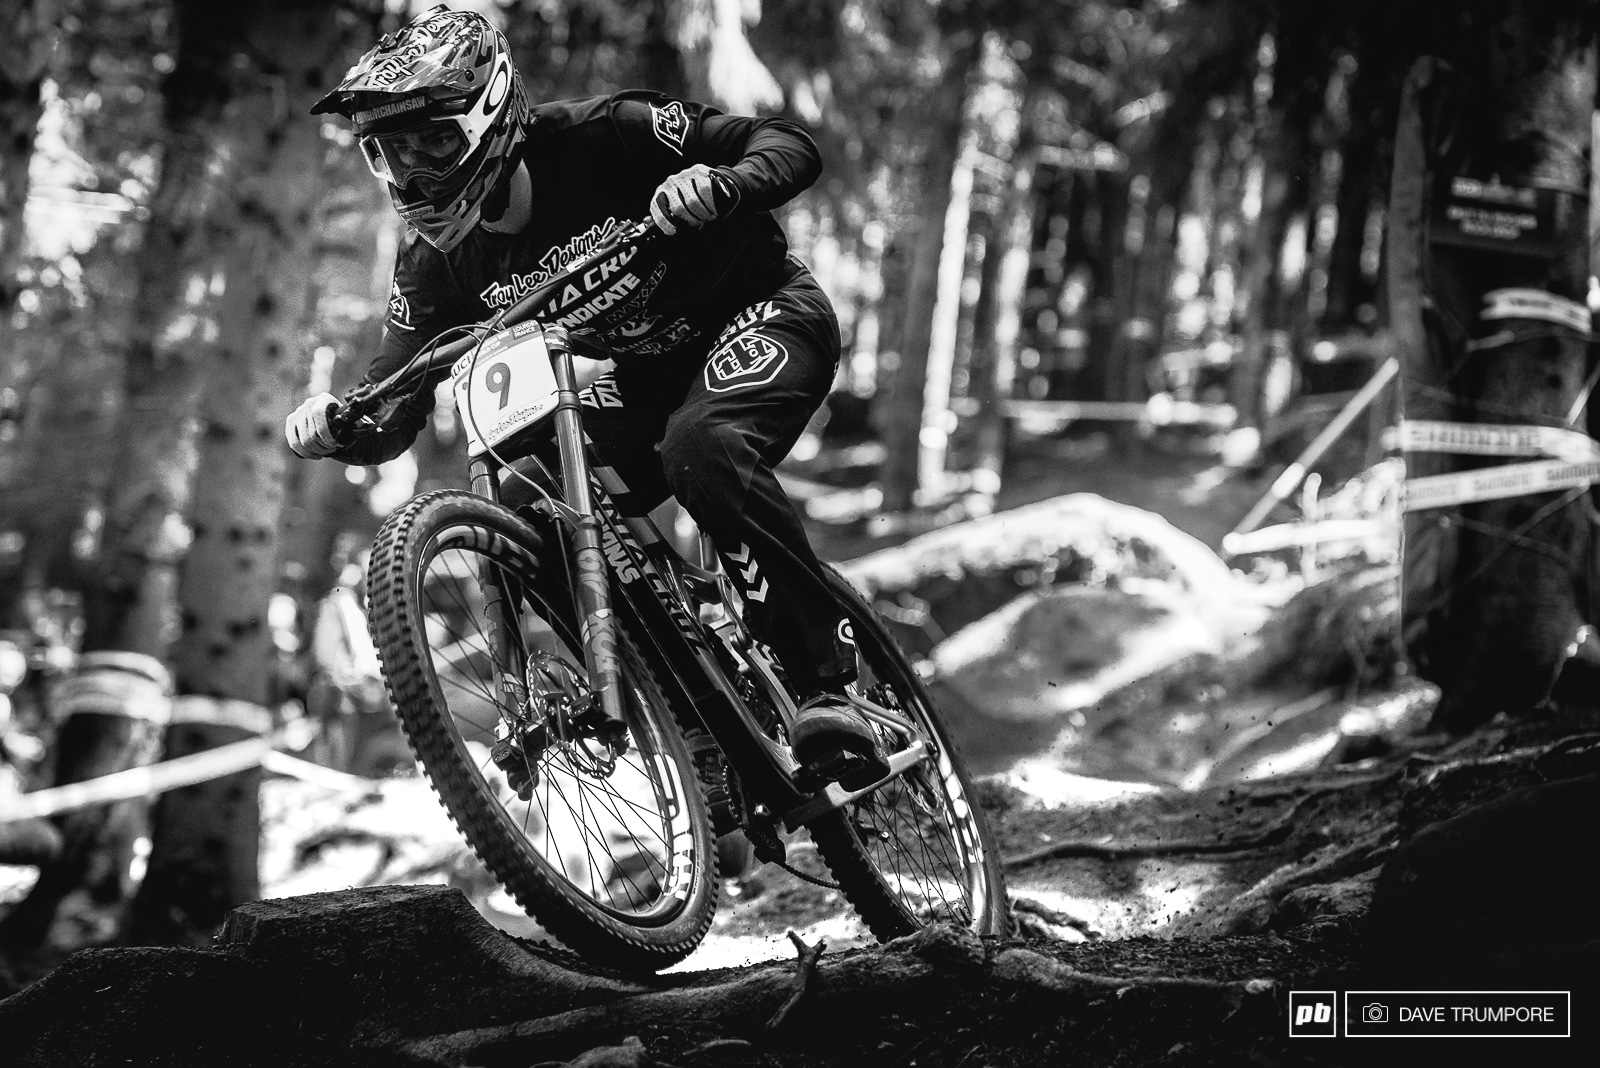 Luca Shaw put down his best quail run ever to take third making in a 1 3 6 day for the new big wheeled V10.